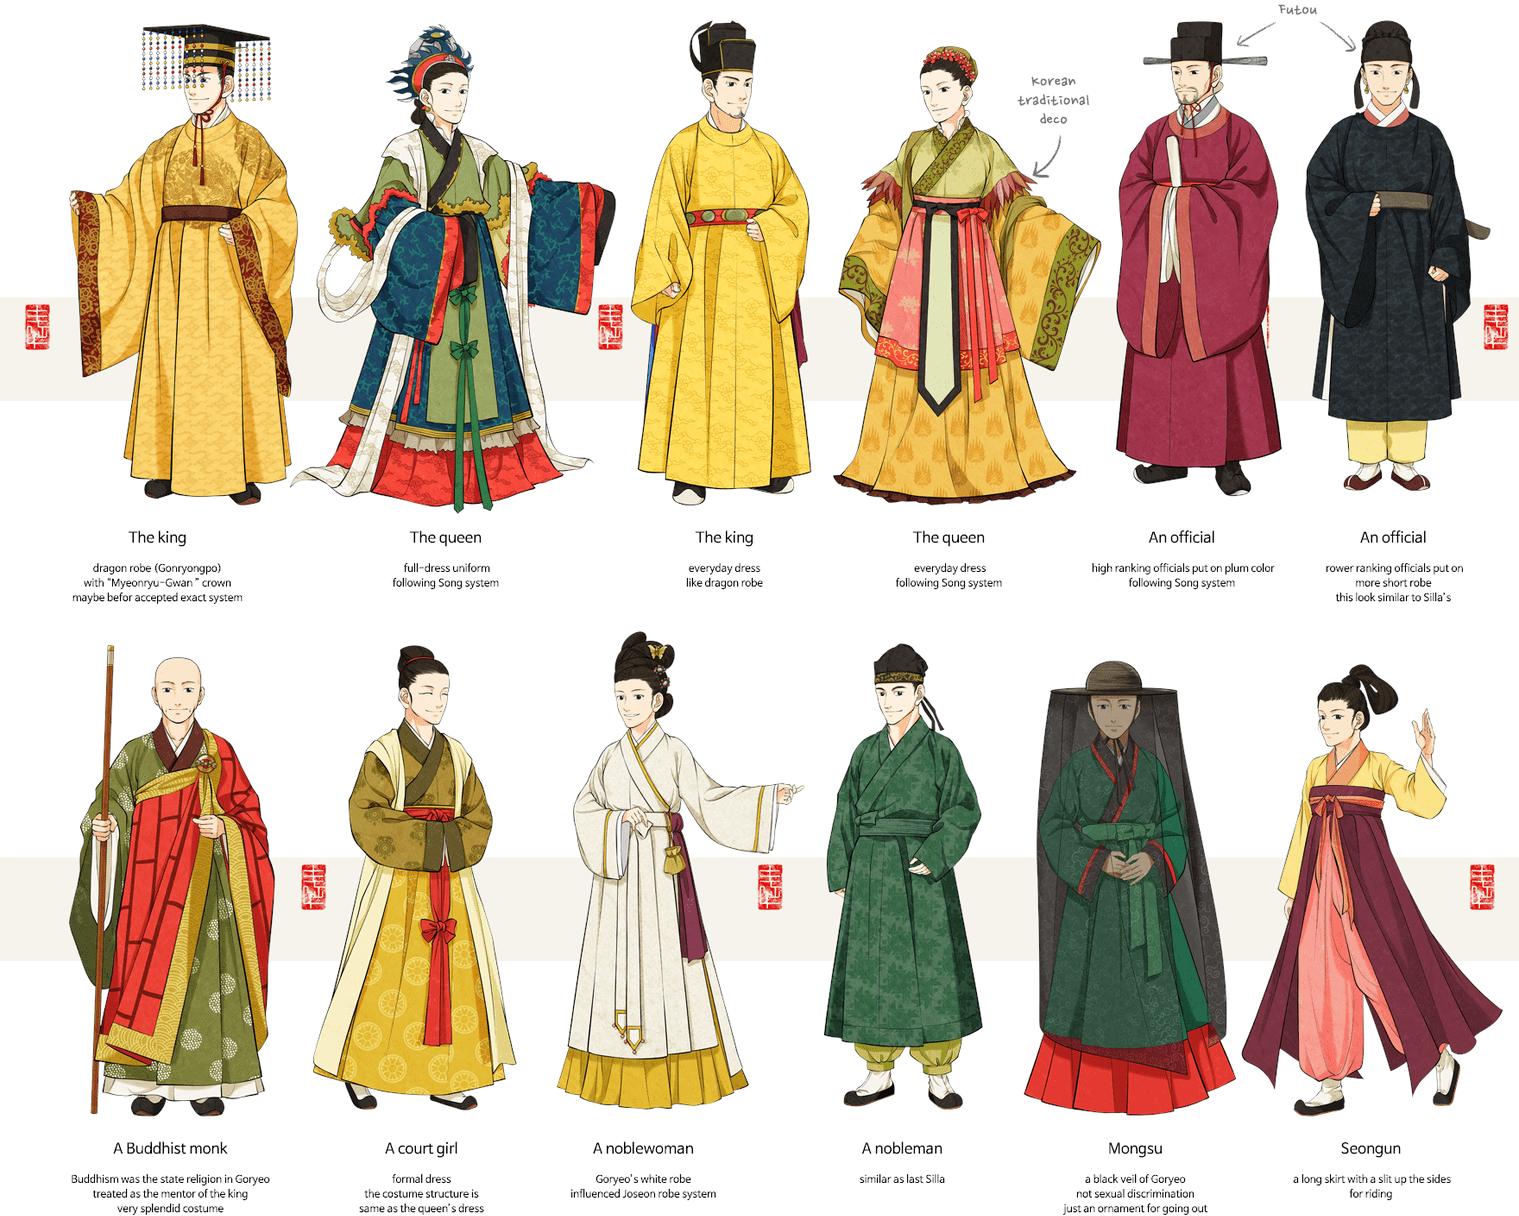 The Unification of Goryeo (Koryo) in the Medieval Age